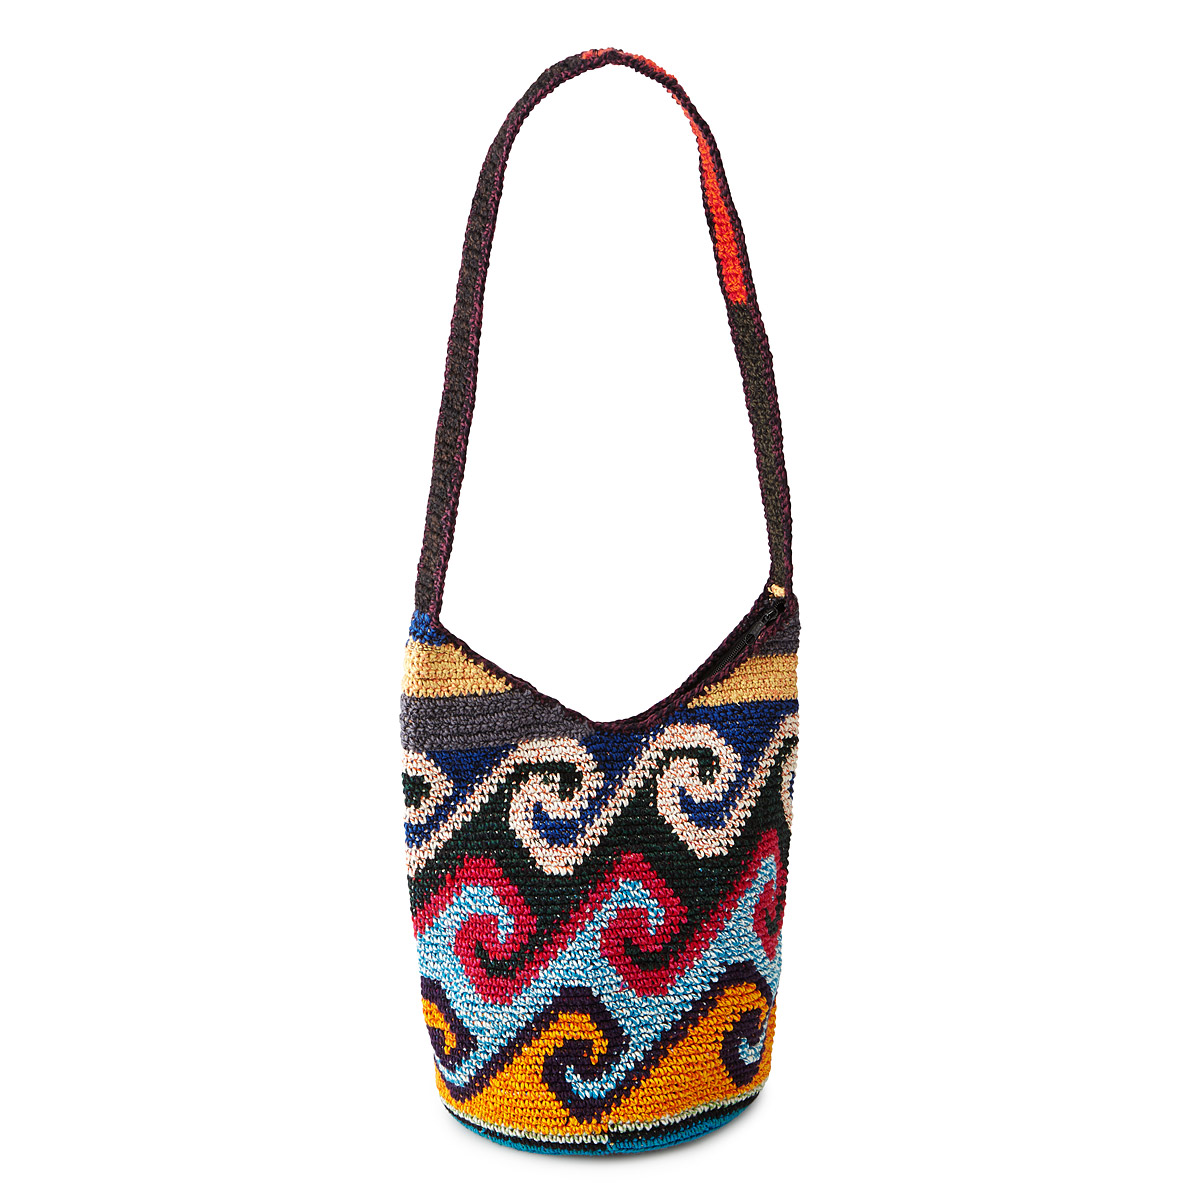 Crochet Shoulder Bag : HAND CROCHETED SHOULDER BAG